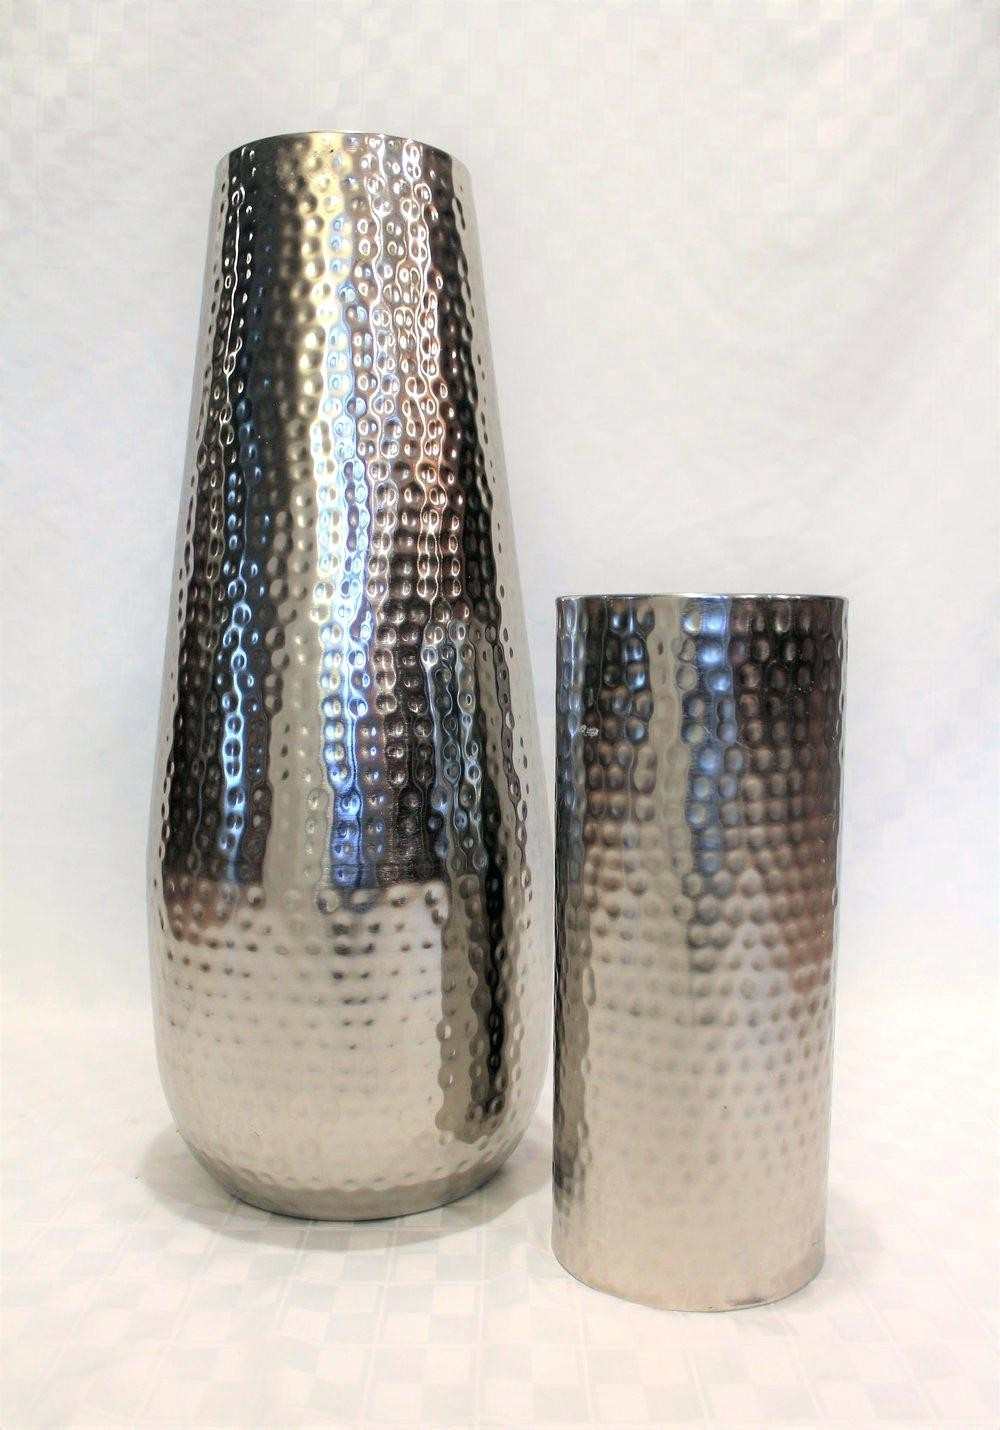 where to buy tall cylinder vases of silver vases wholesale pandoraocharms us pertaining to silver vases wholesale glass bulk tall flower fl org